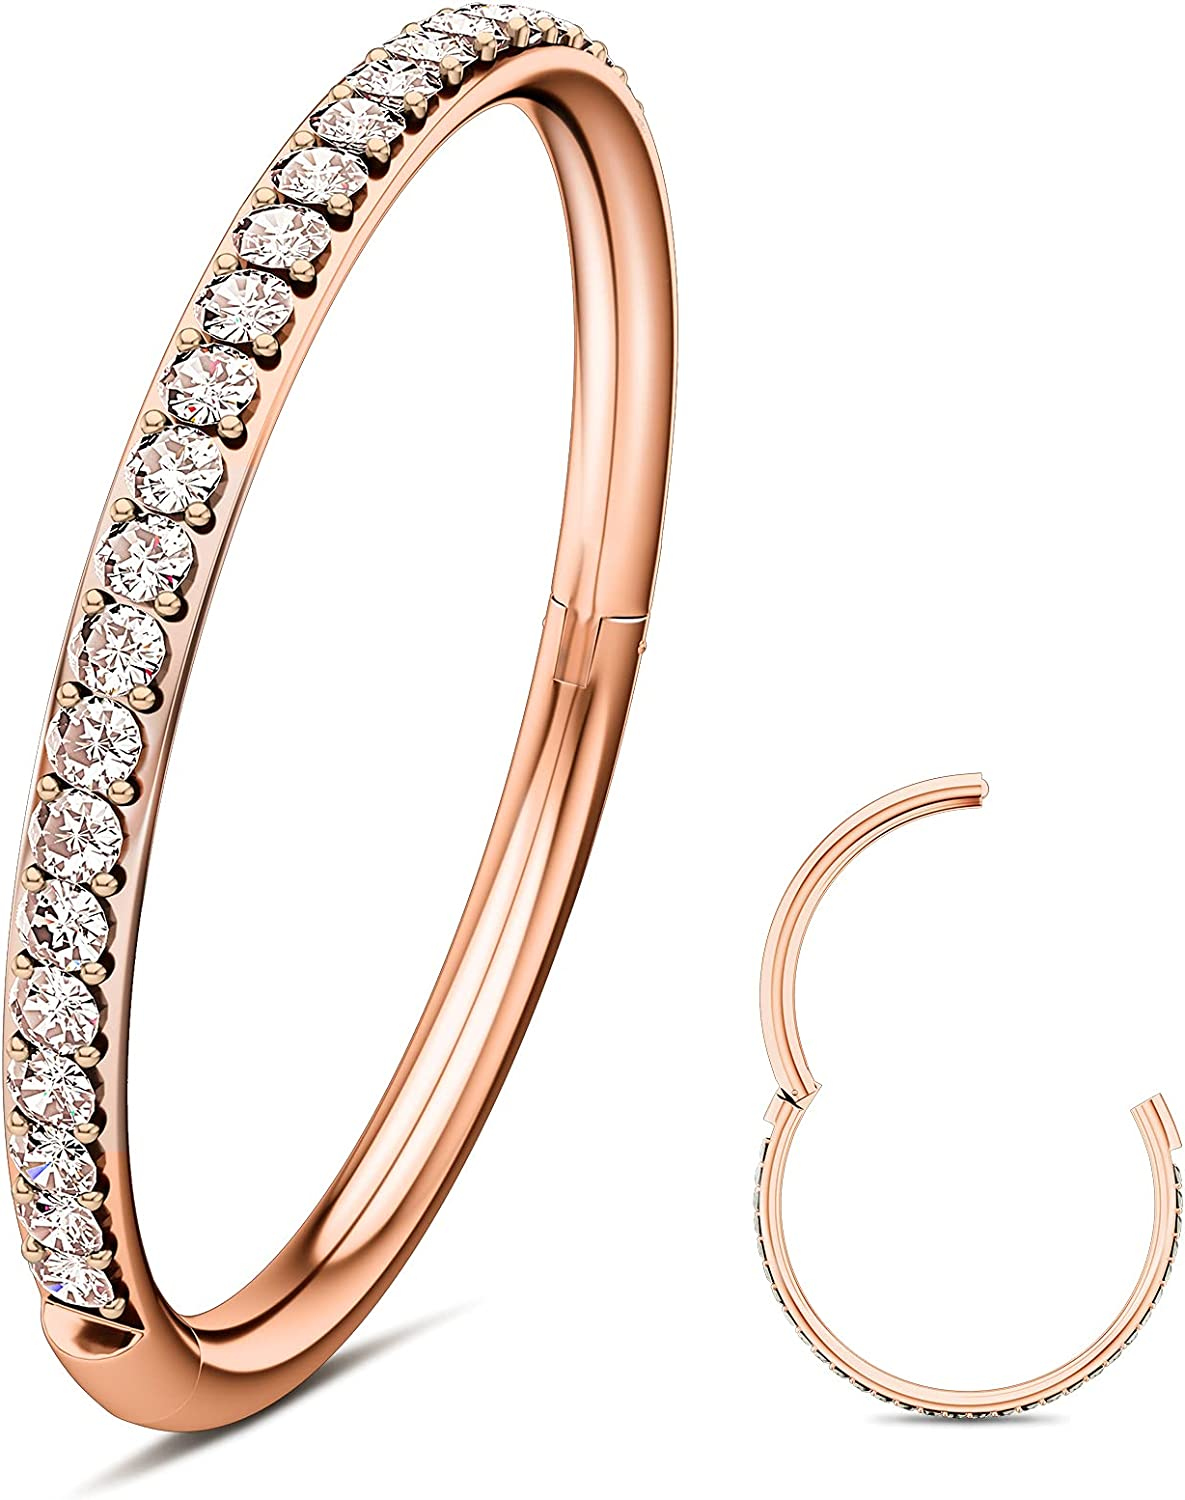 Wssxc 316L Surgical Steel Hinged Nose Rings Hoop with Zircon 16G Body Pierecing Ring Segment Clicker Lip Rings Cartilage Rook Diameter 6mm 8mm 10mm